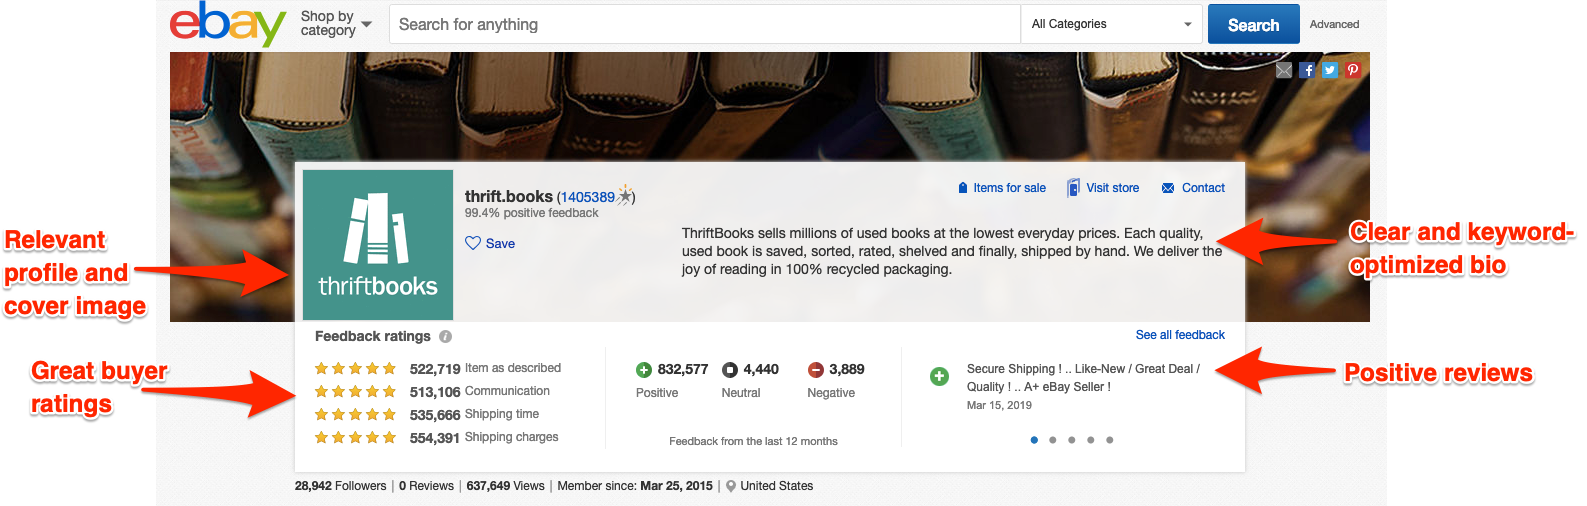 eBay SEO: How to Optimize Your Listing and Boost Your